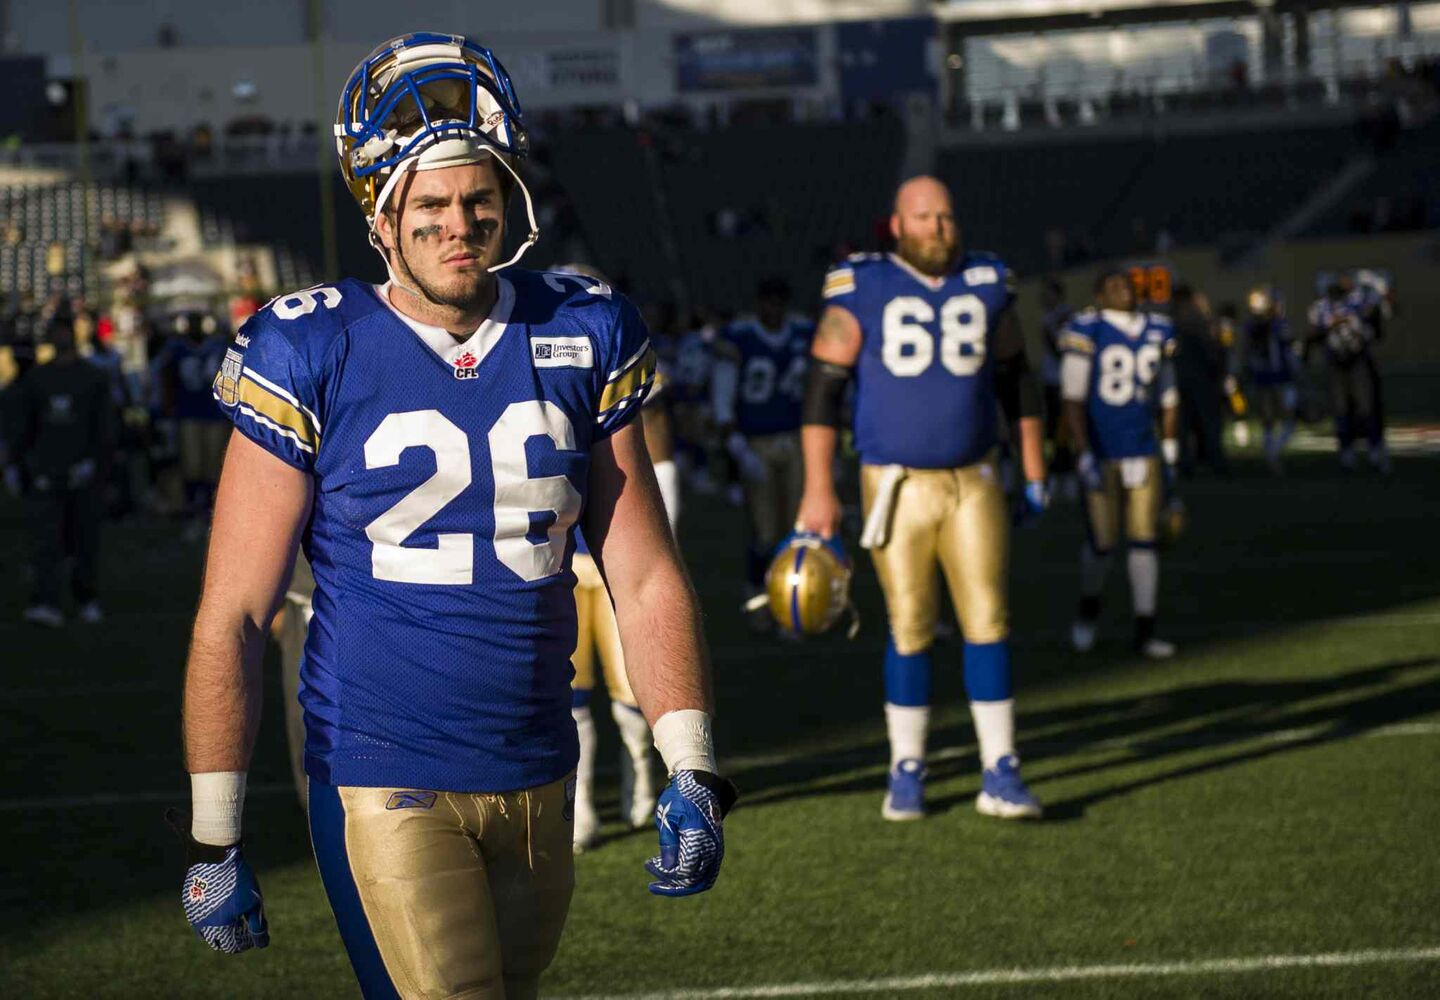 Winnipeg Blue Bombers Carl Fitzgerald (#26) looks dejected as he leaves the field.